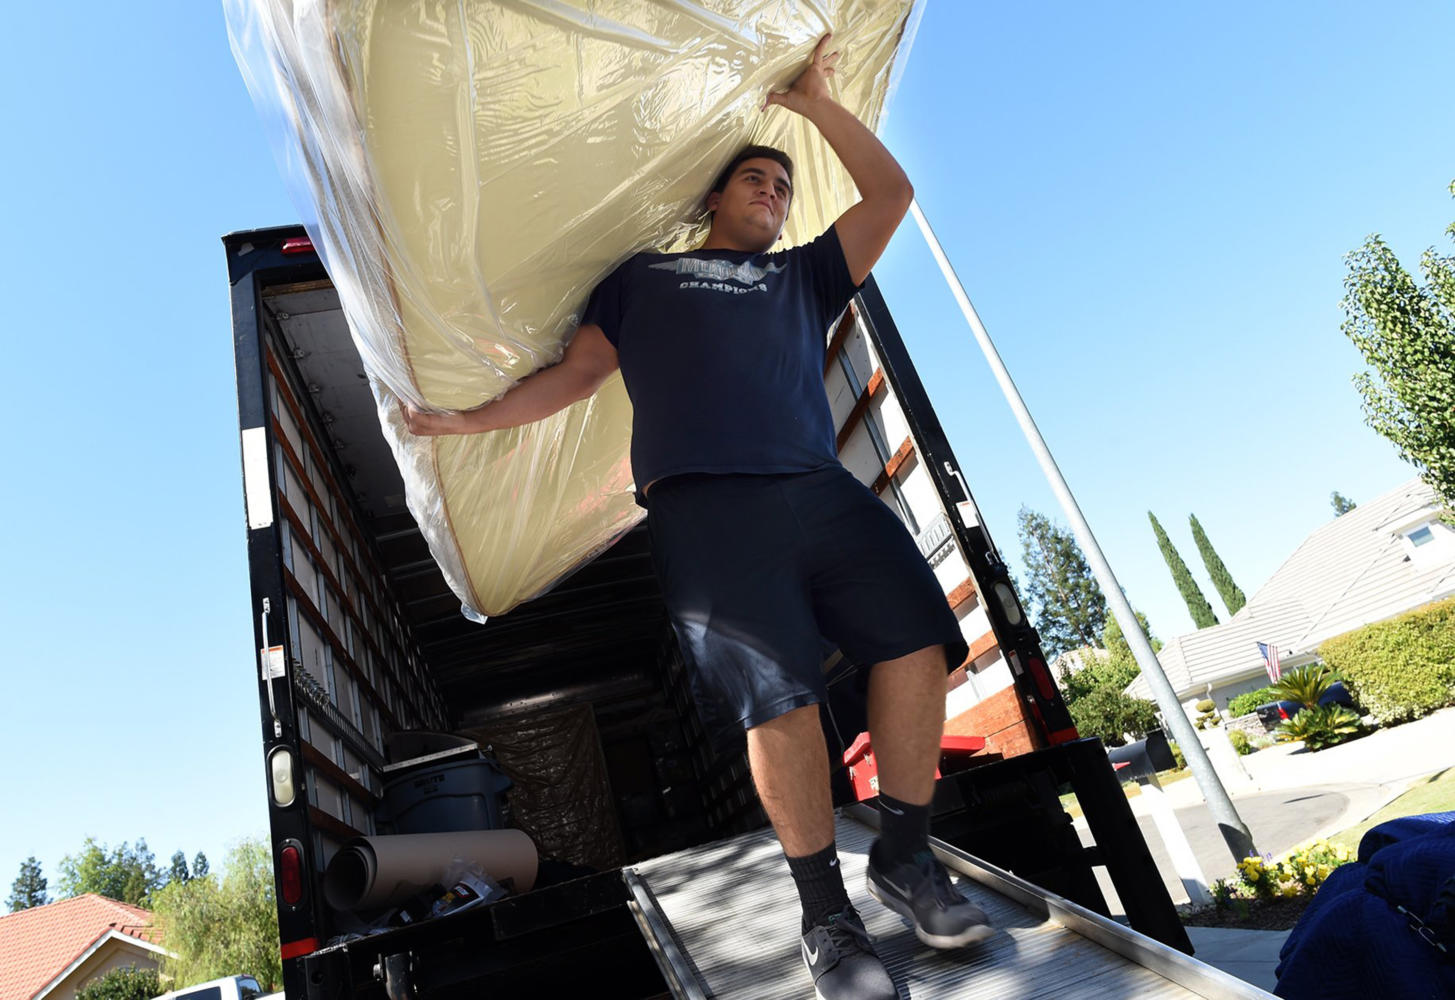 Meathead Movers worker Theo Stratigos, a former Bullard High football and rugby player, moves a bed into a home, Thursday, Sept. 28, 2017. (John Walker/Fresno Bee/TNS)